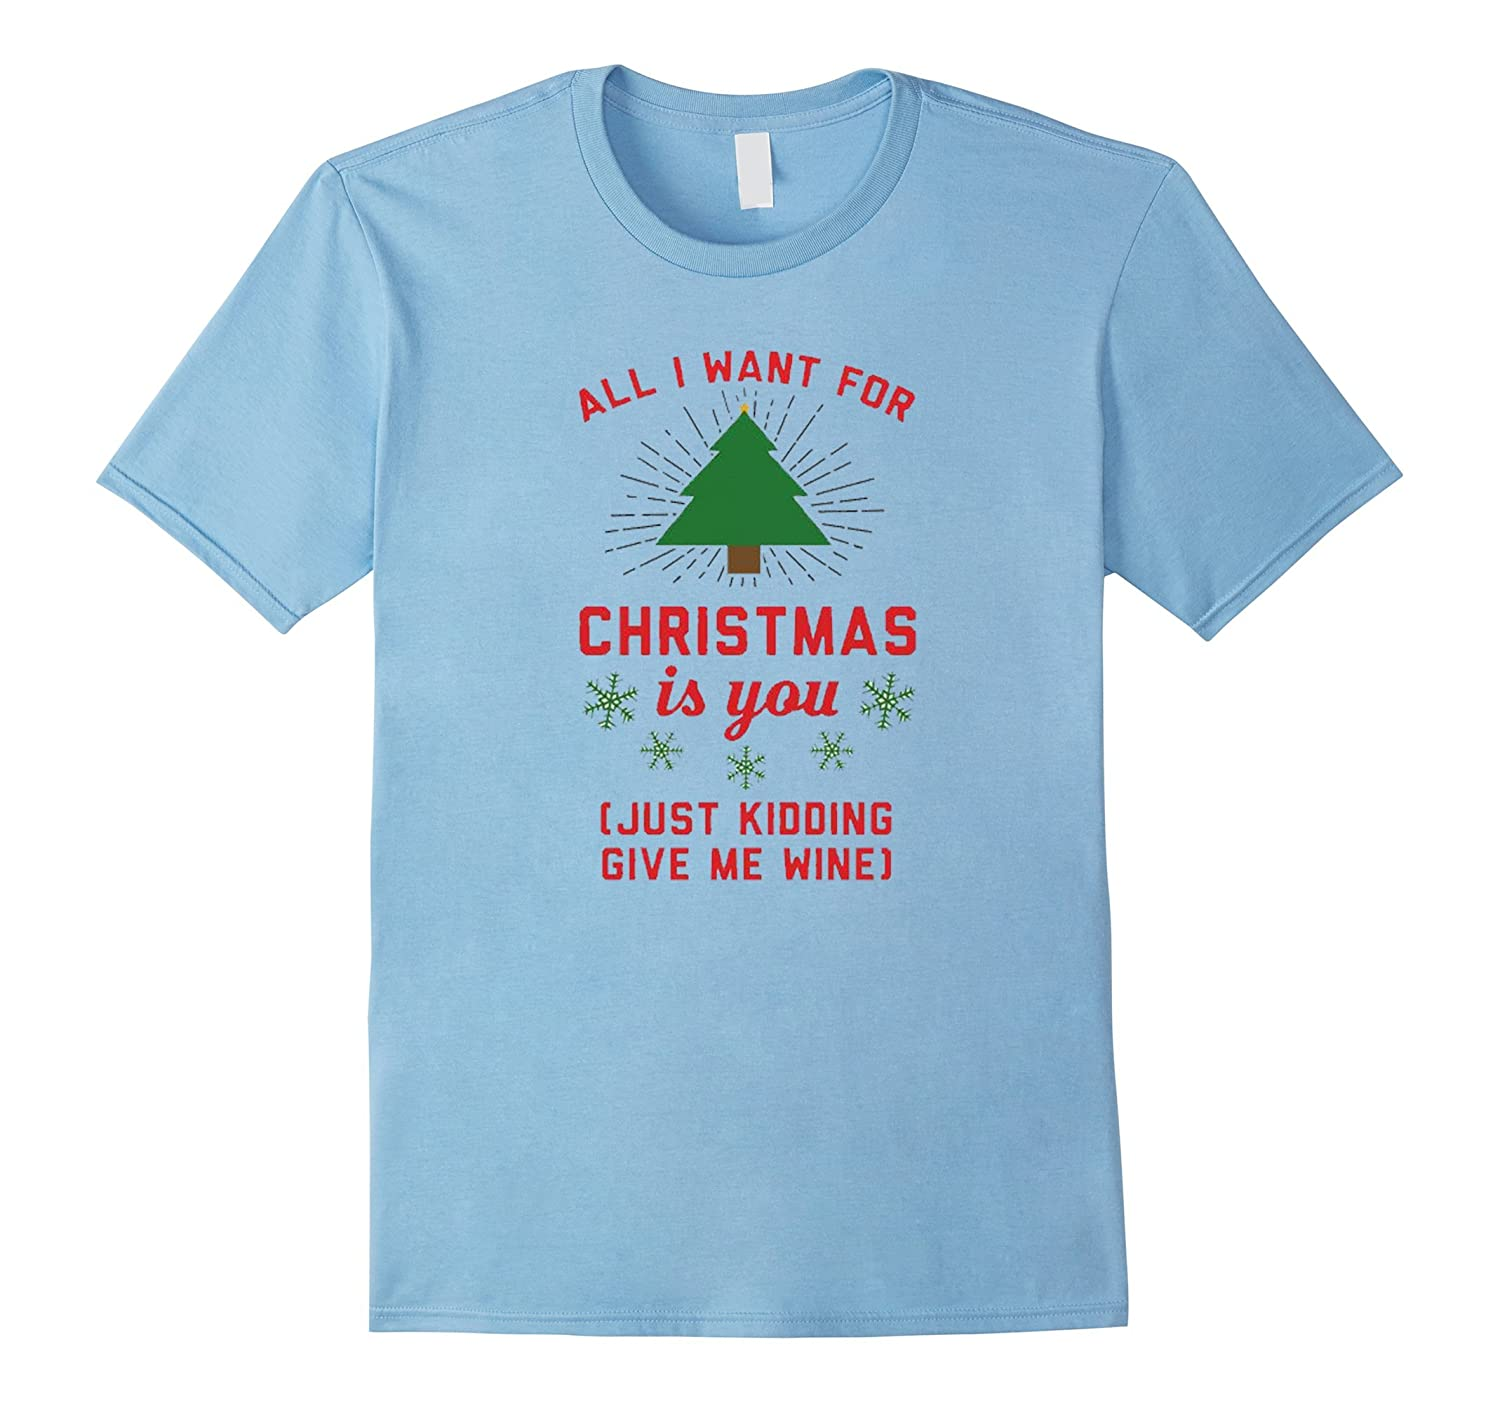 Wine Christmas Tree Shirt.All I Want For Christmas Is You Give Me Wine T Shirt Bn